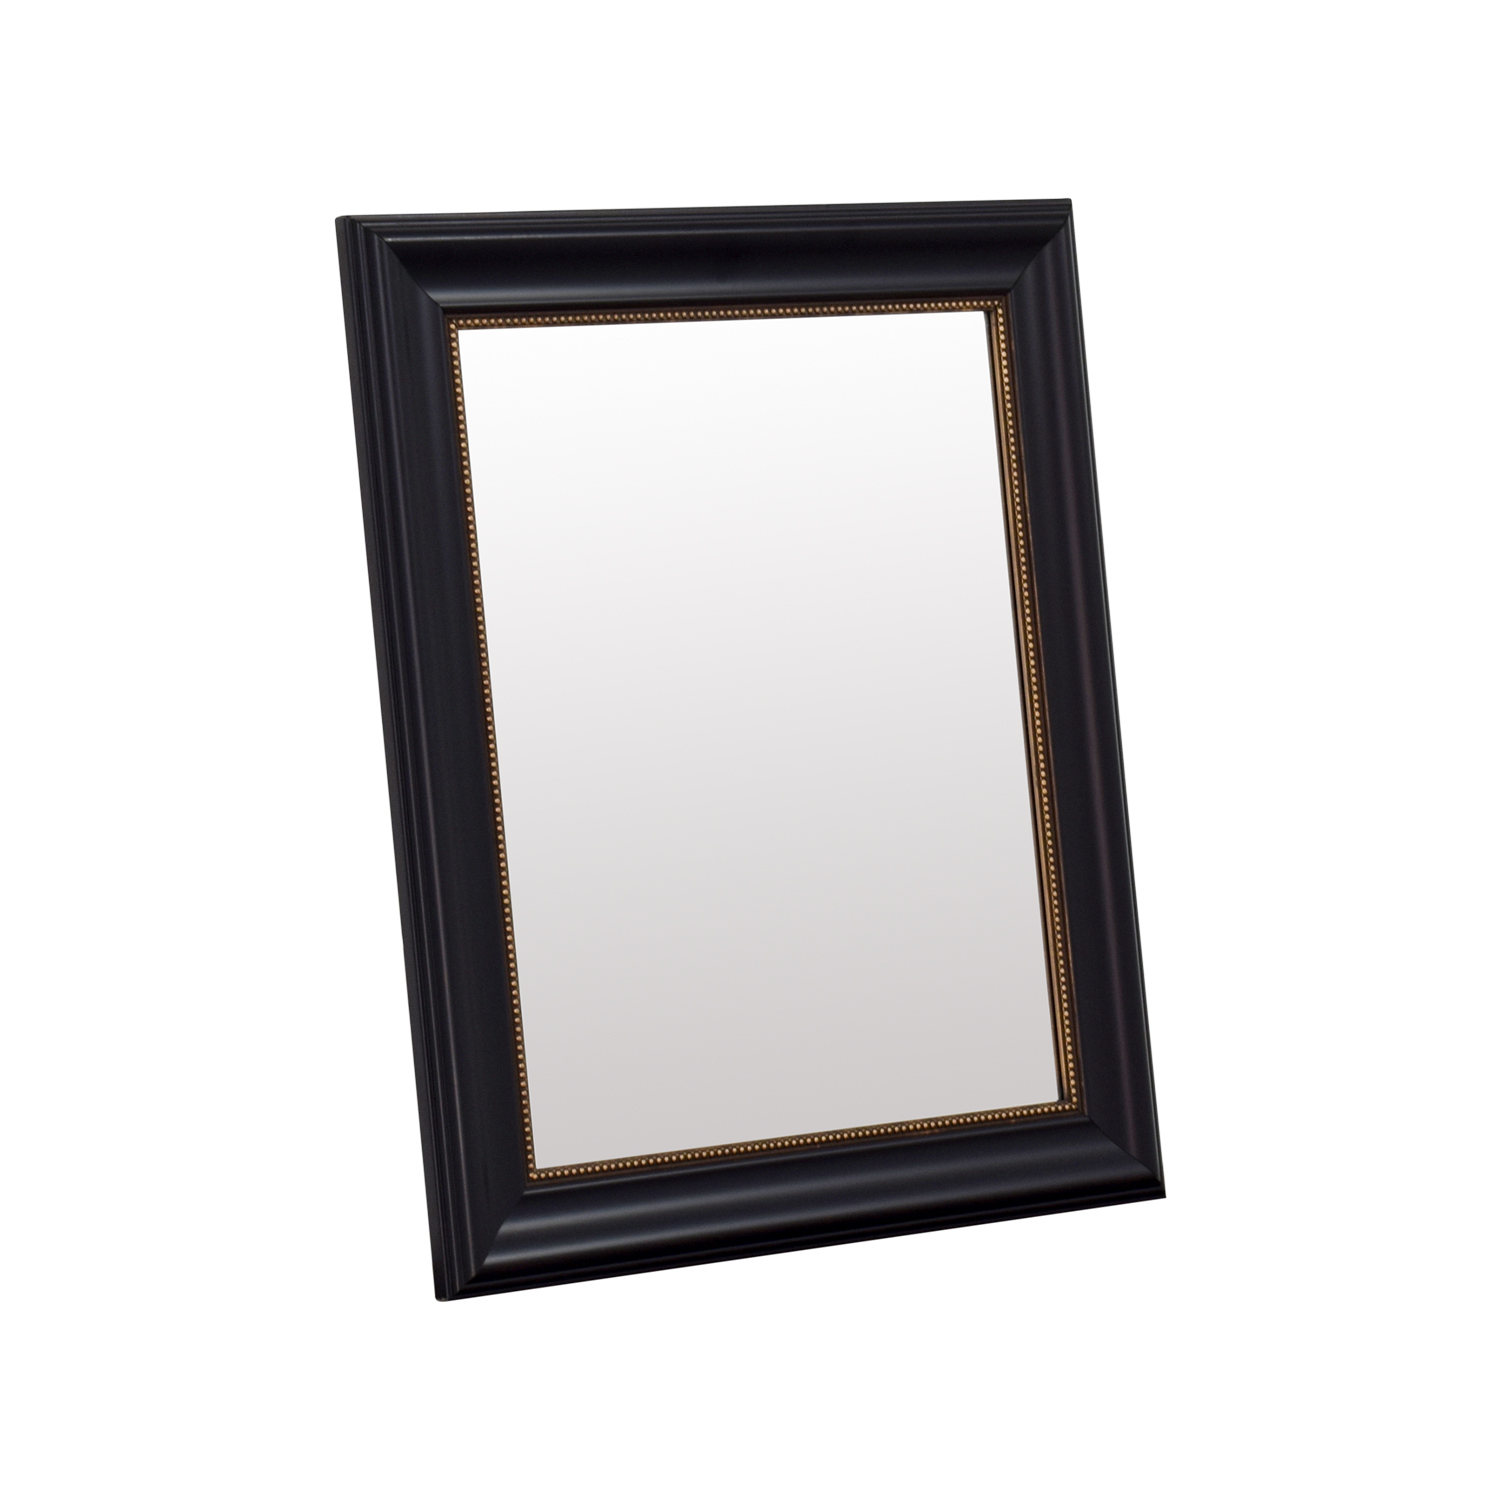 60 off homegoods homegoods black and gold beveled Home interiors mirrors